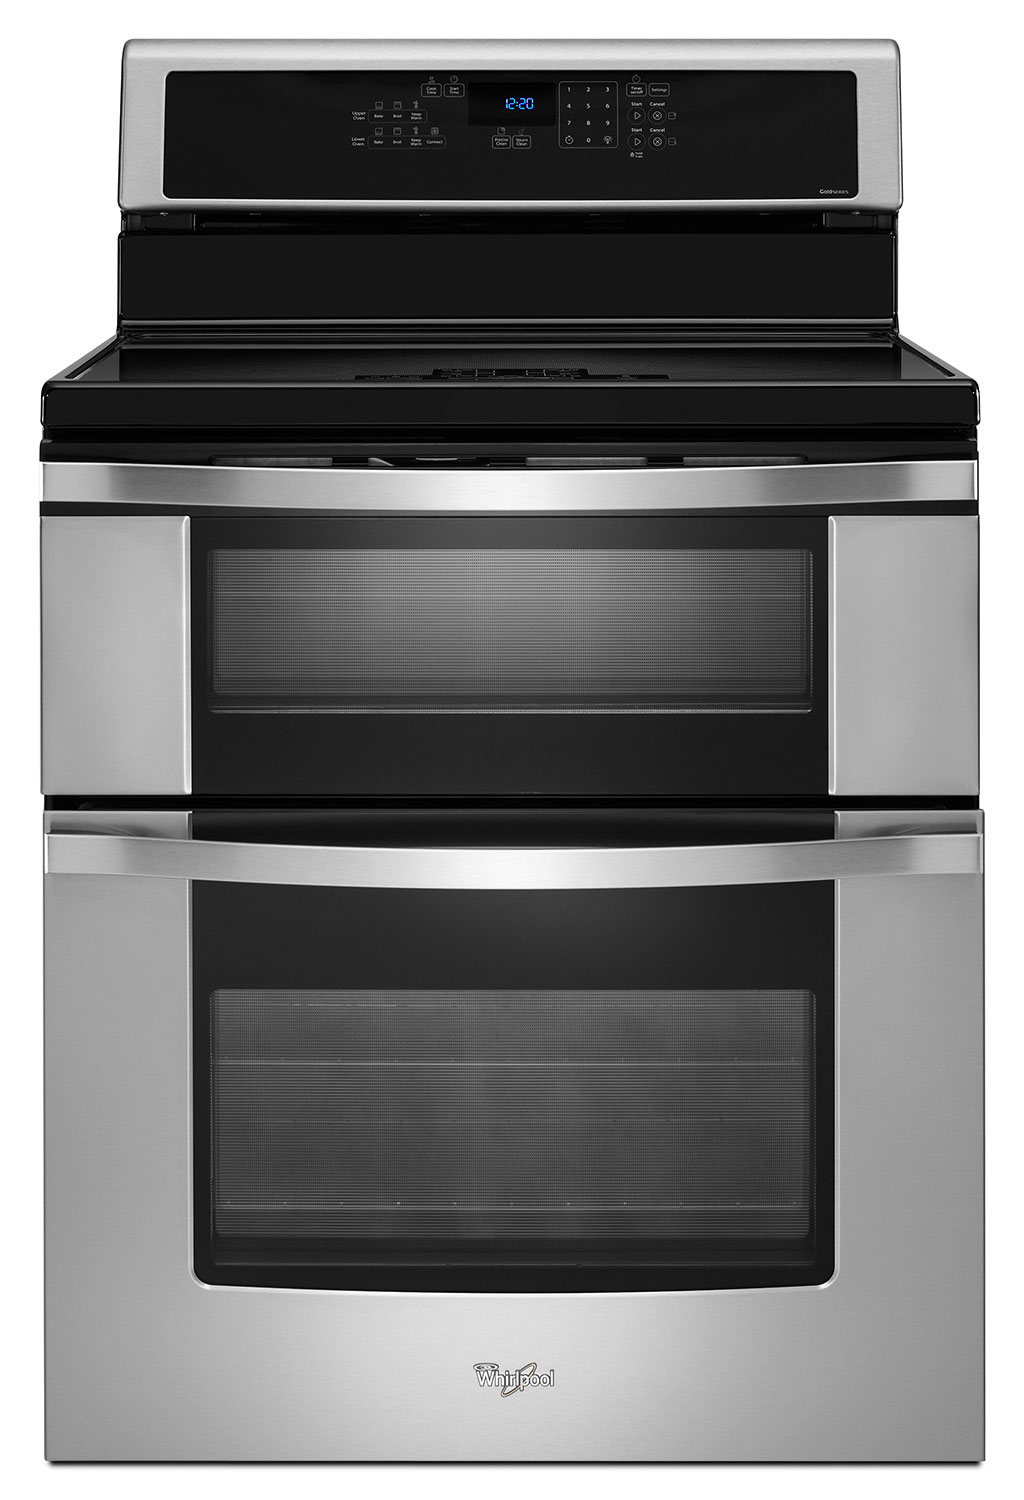 Cooking Products - Whirlpool Stainless Steel Freestanding Electric Double Range (6.7 Cu. Ft.) - YWGI925C0BS